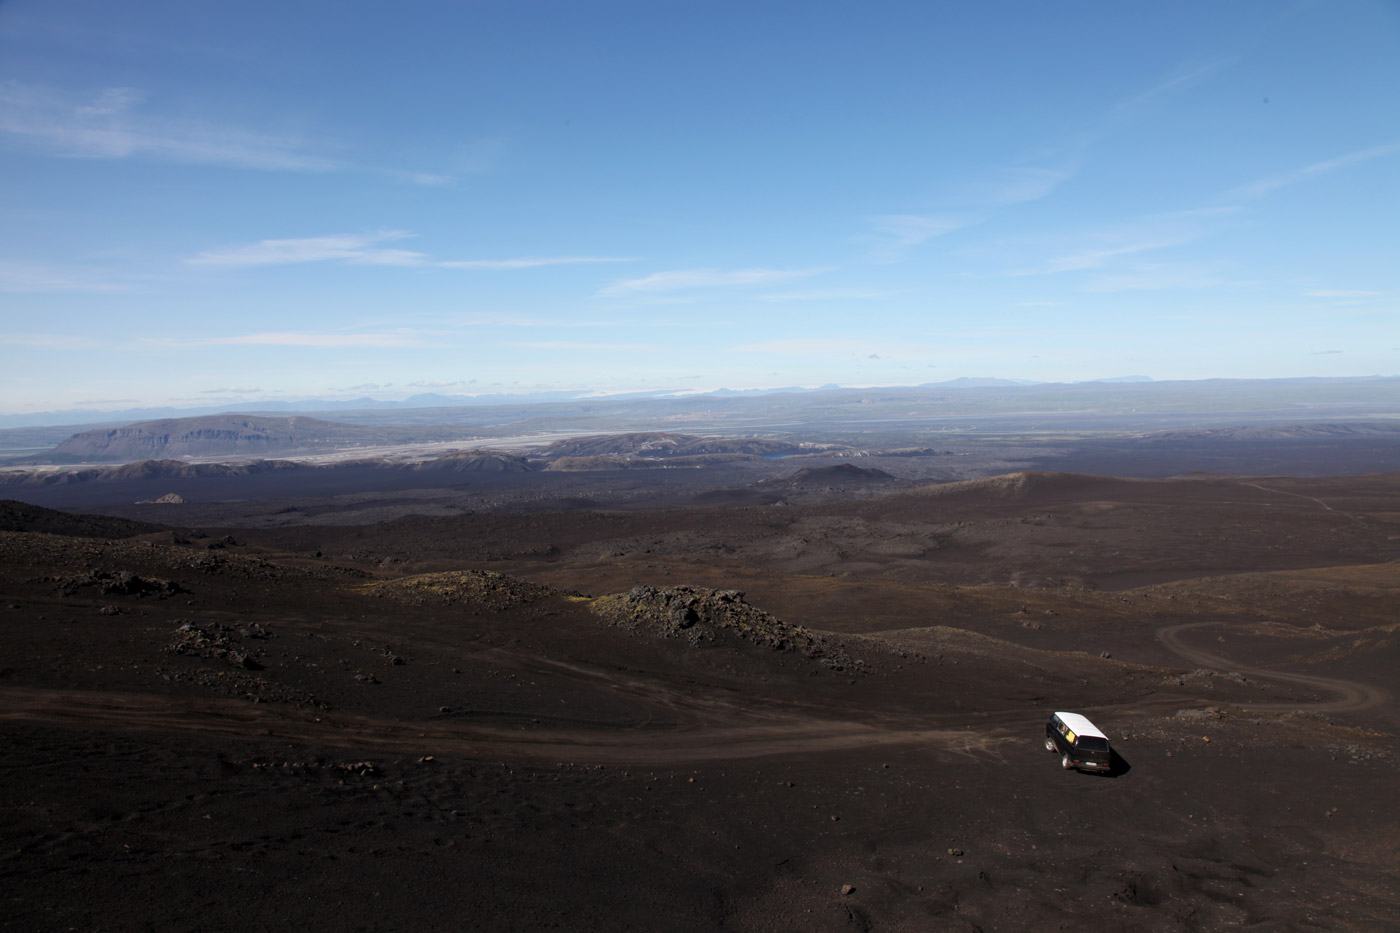 The view from Hekla, Iceland